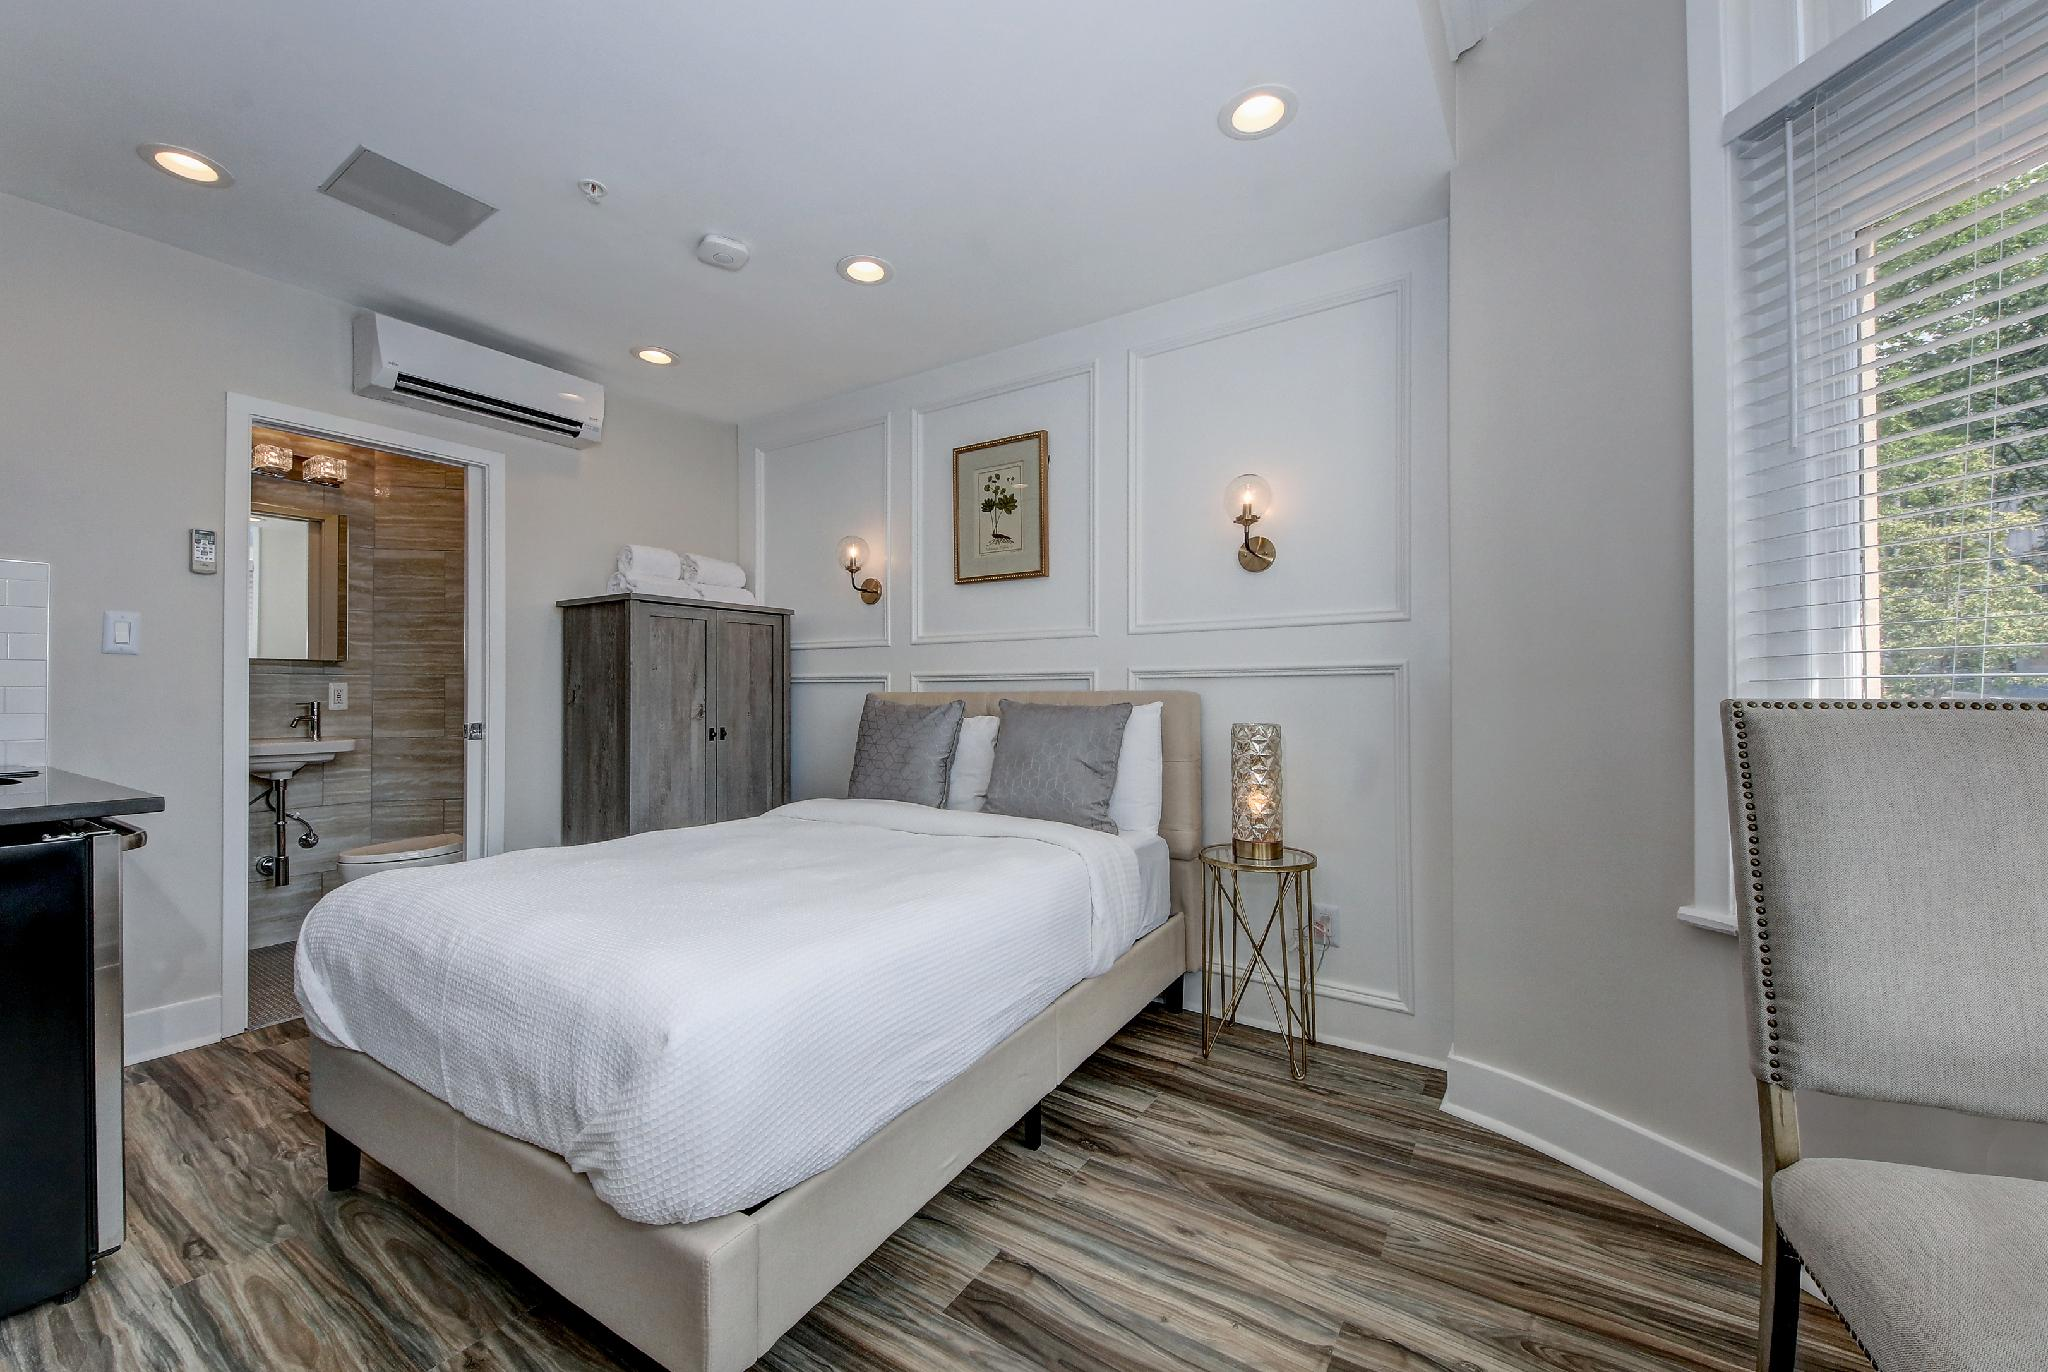 Studio B · DuPont Circle/Kalorama Luxury Apartment